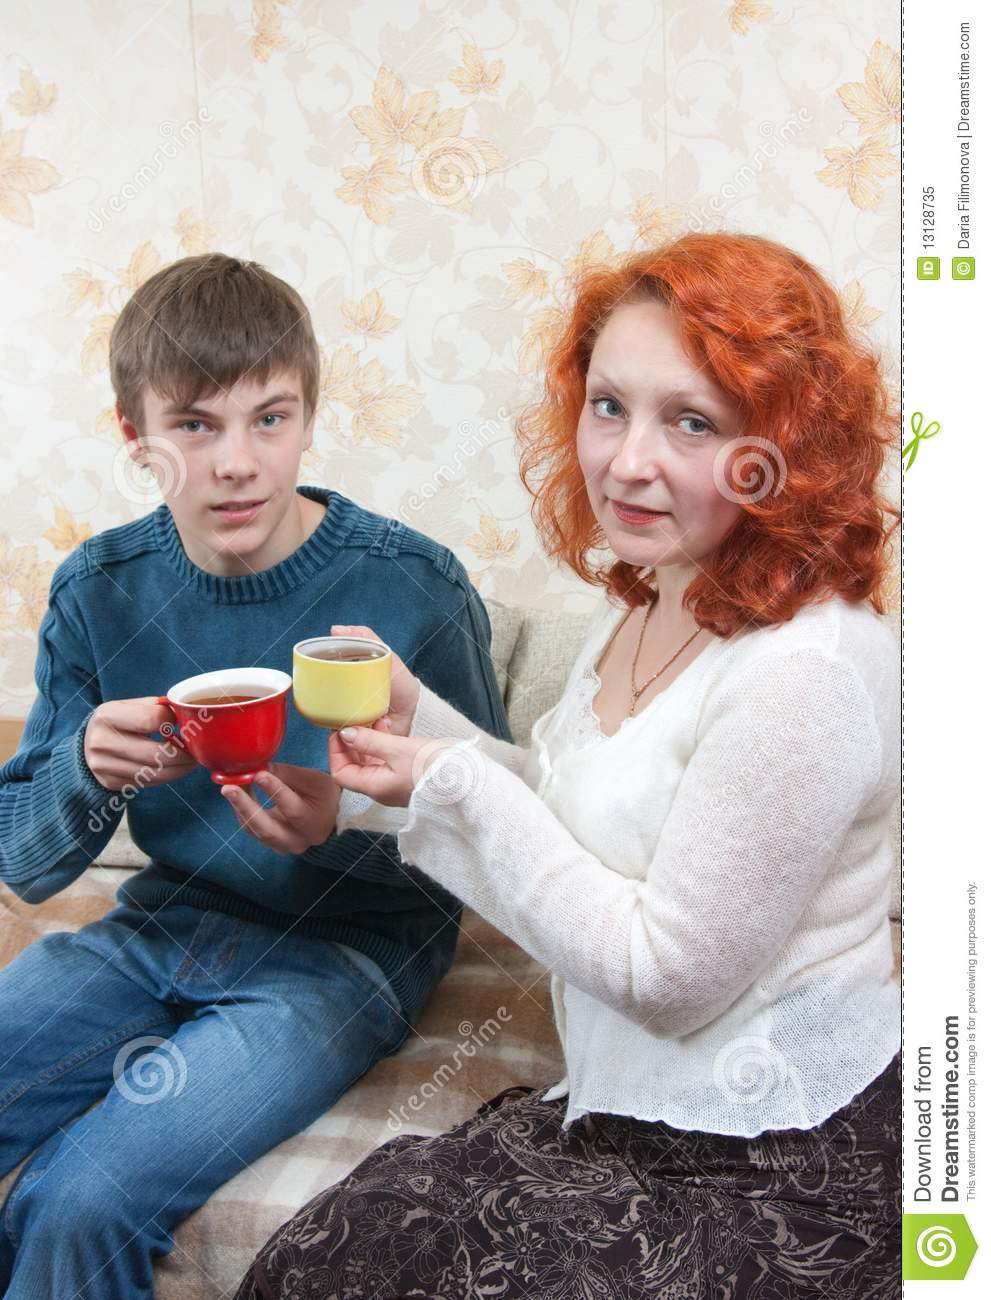 Mother and son having coffee